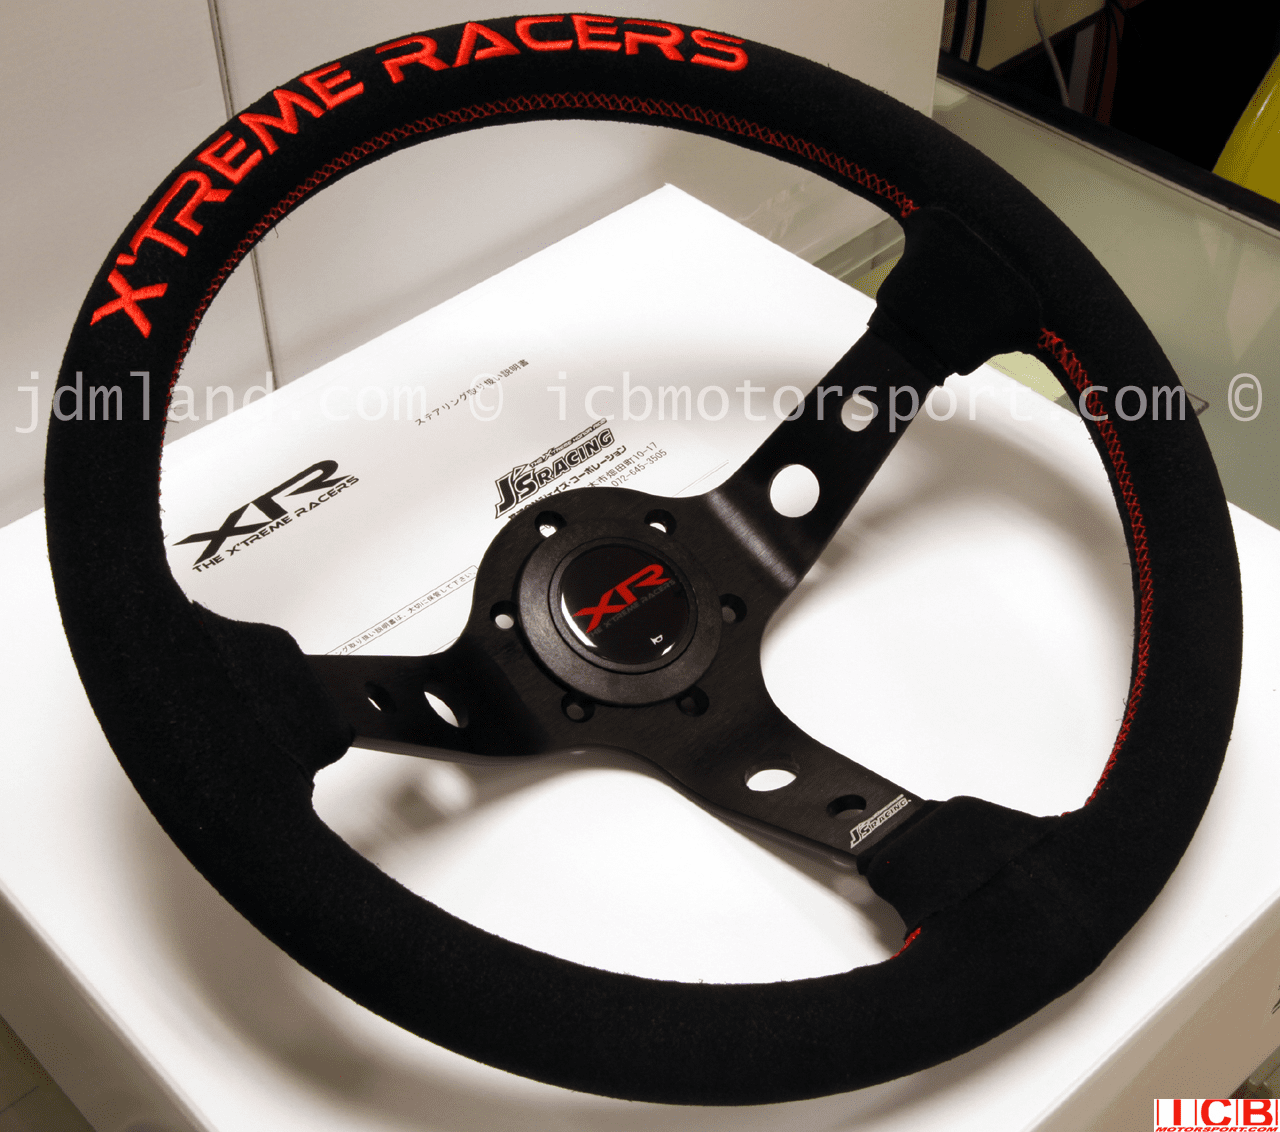 J's Racing Xtreme Racers Type D 330mm Deep Dished Suede Steering Wheel